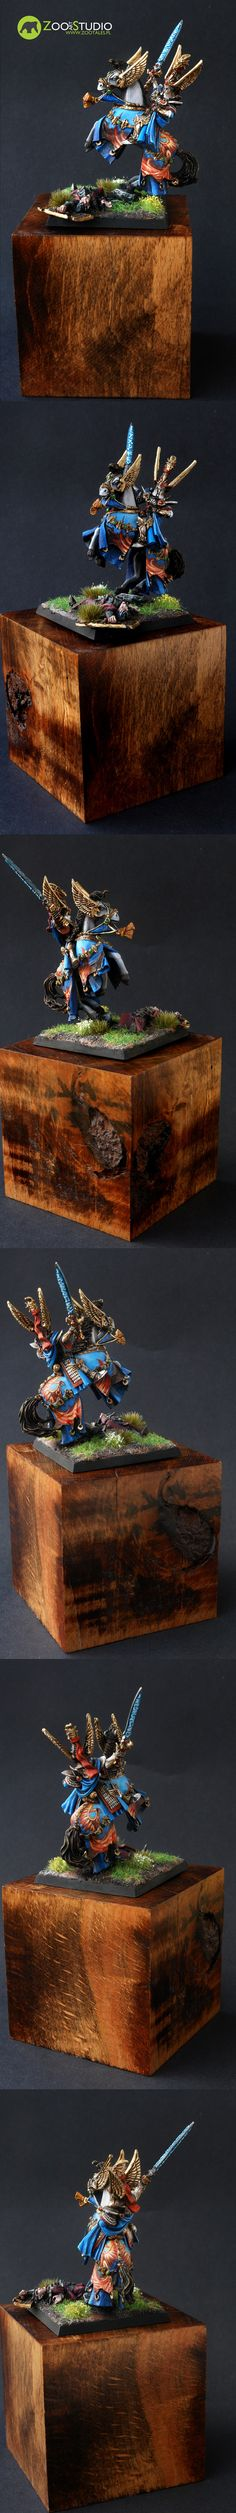 Tyrion from Games Workshop; painted by Doe from Zoo Art Studio www. Zoo Art, Workshop, Studio, Games, Atelier, Work Shop Garage, Studios, Gaming, Plays